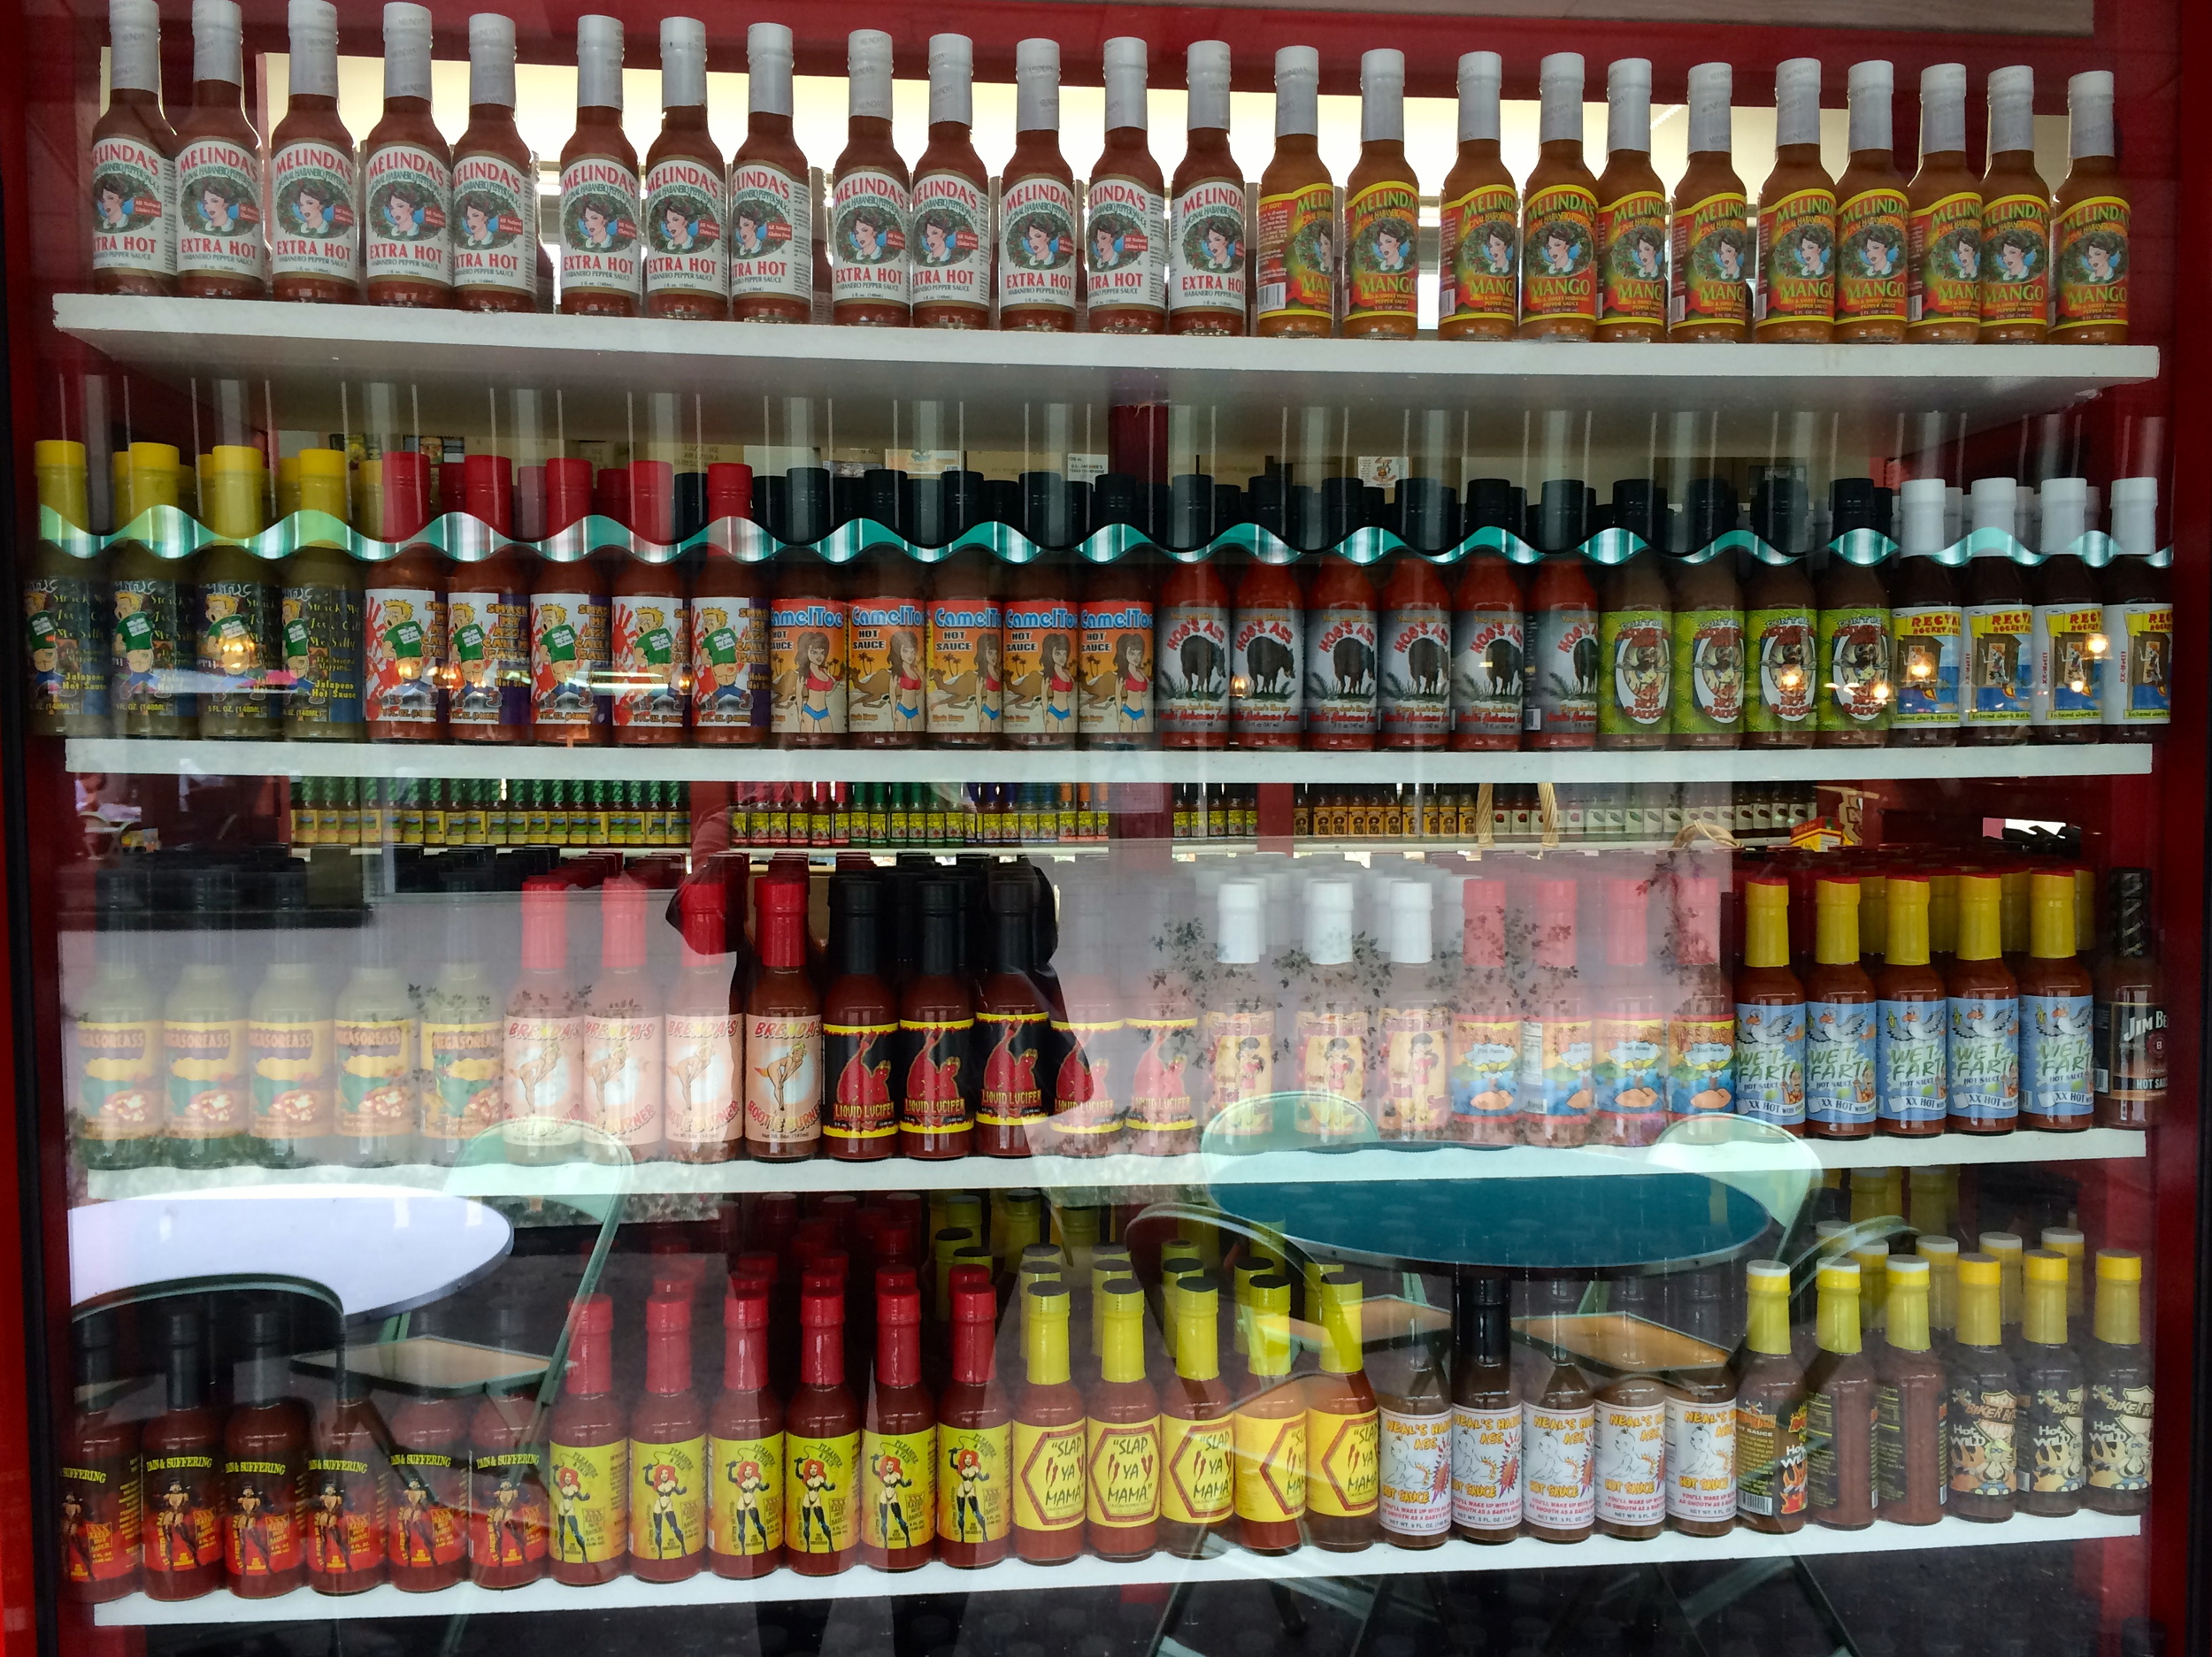 A wall of hot sauces from Light My Fire in the market.